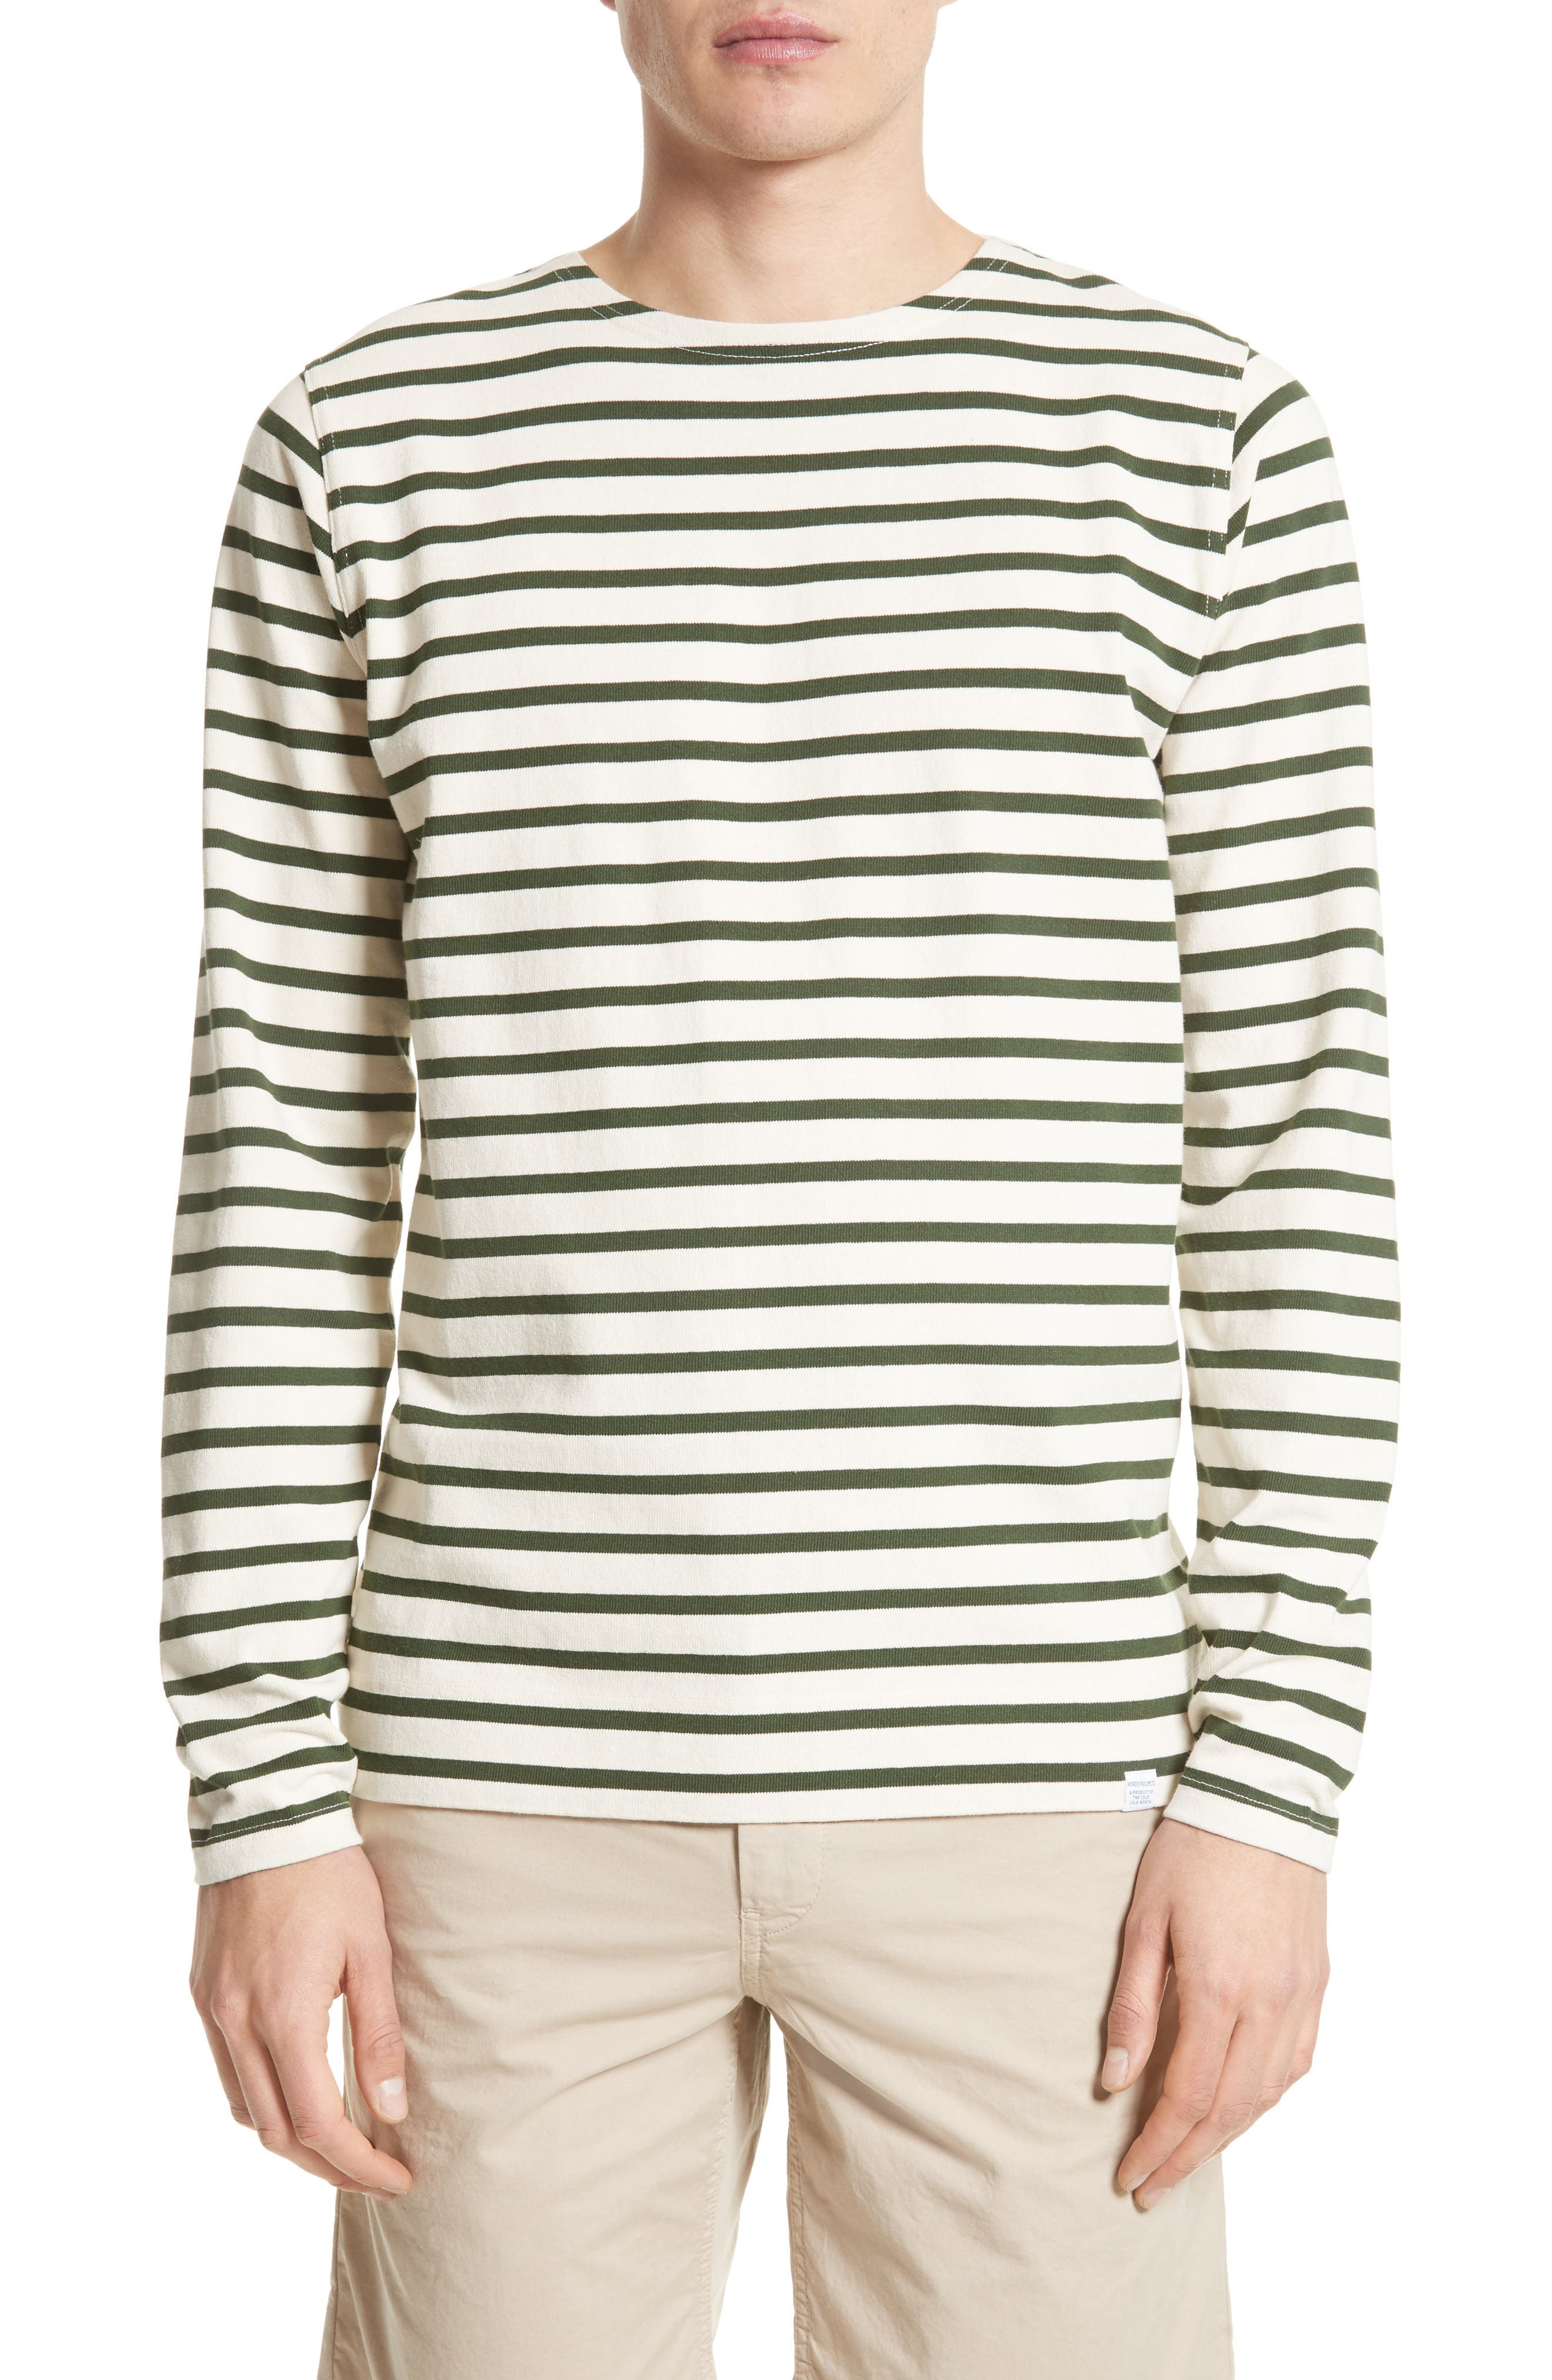 Main Image - Norse Projects Stripe T-Shirt